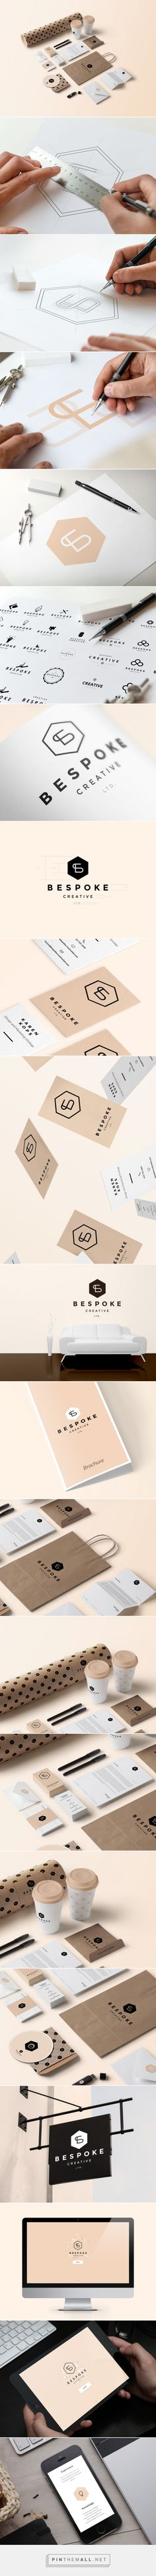 Branding and Website Design: Bespoke Creative by Tomasz Mazurczak